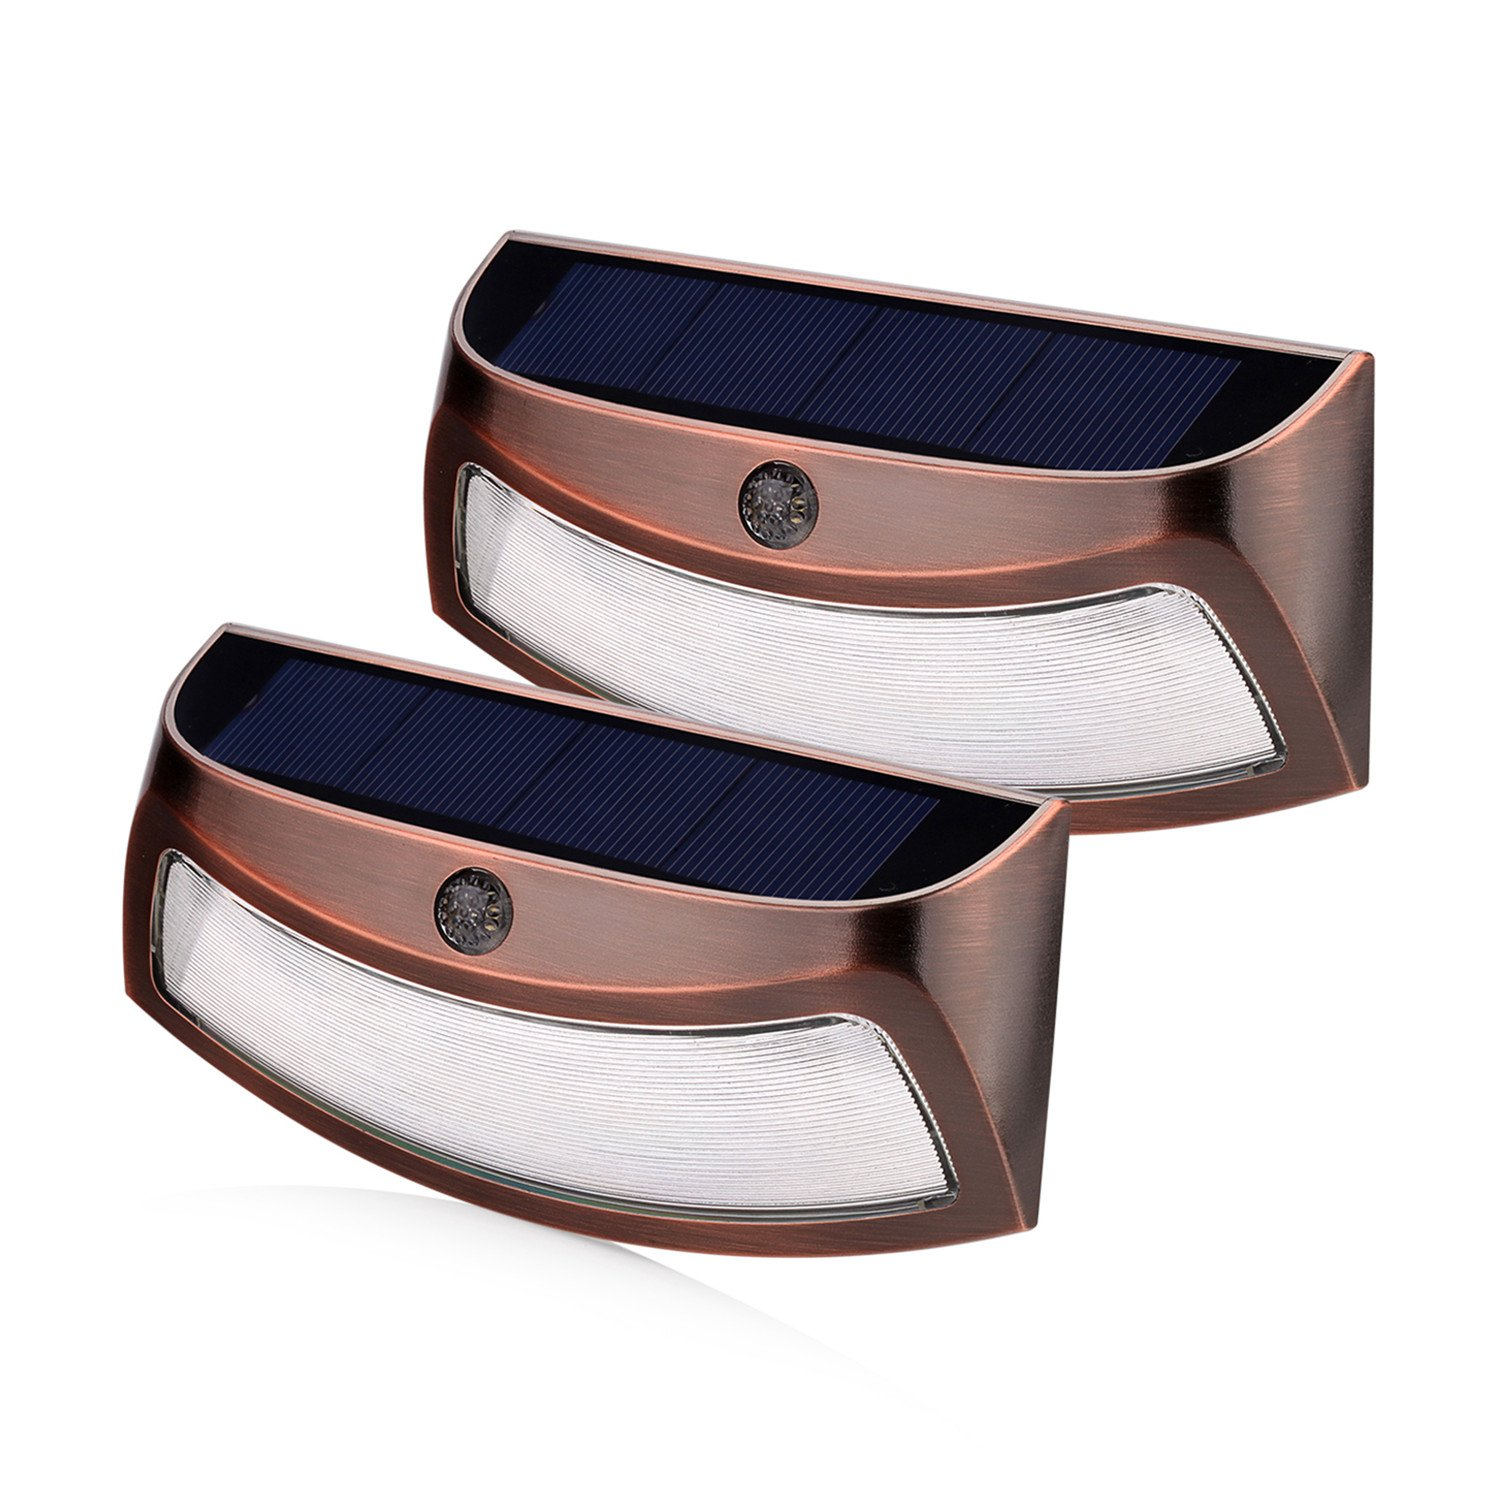 Solar Lights Outdoor, xtf2015 Copper Outdoor Step Lights, Wireless Waterproof LED Solar Lights for Stair, Patio, Yard, Fence, Walkways, Outside Wall - Auto On/Off(2 Pack, Warm White) by XTF2015